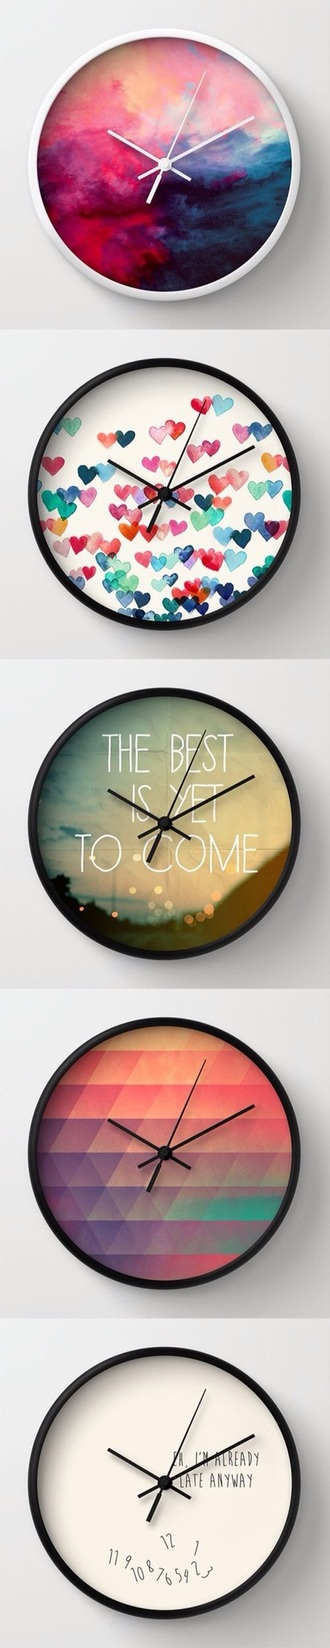 home accessory cool cute clock hipster society6 living room